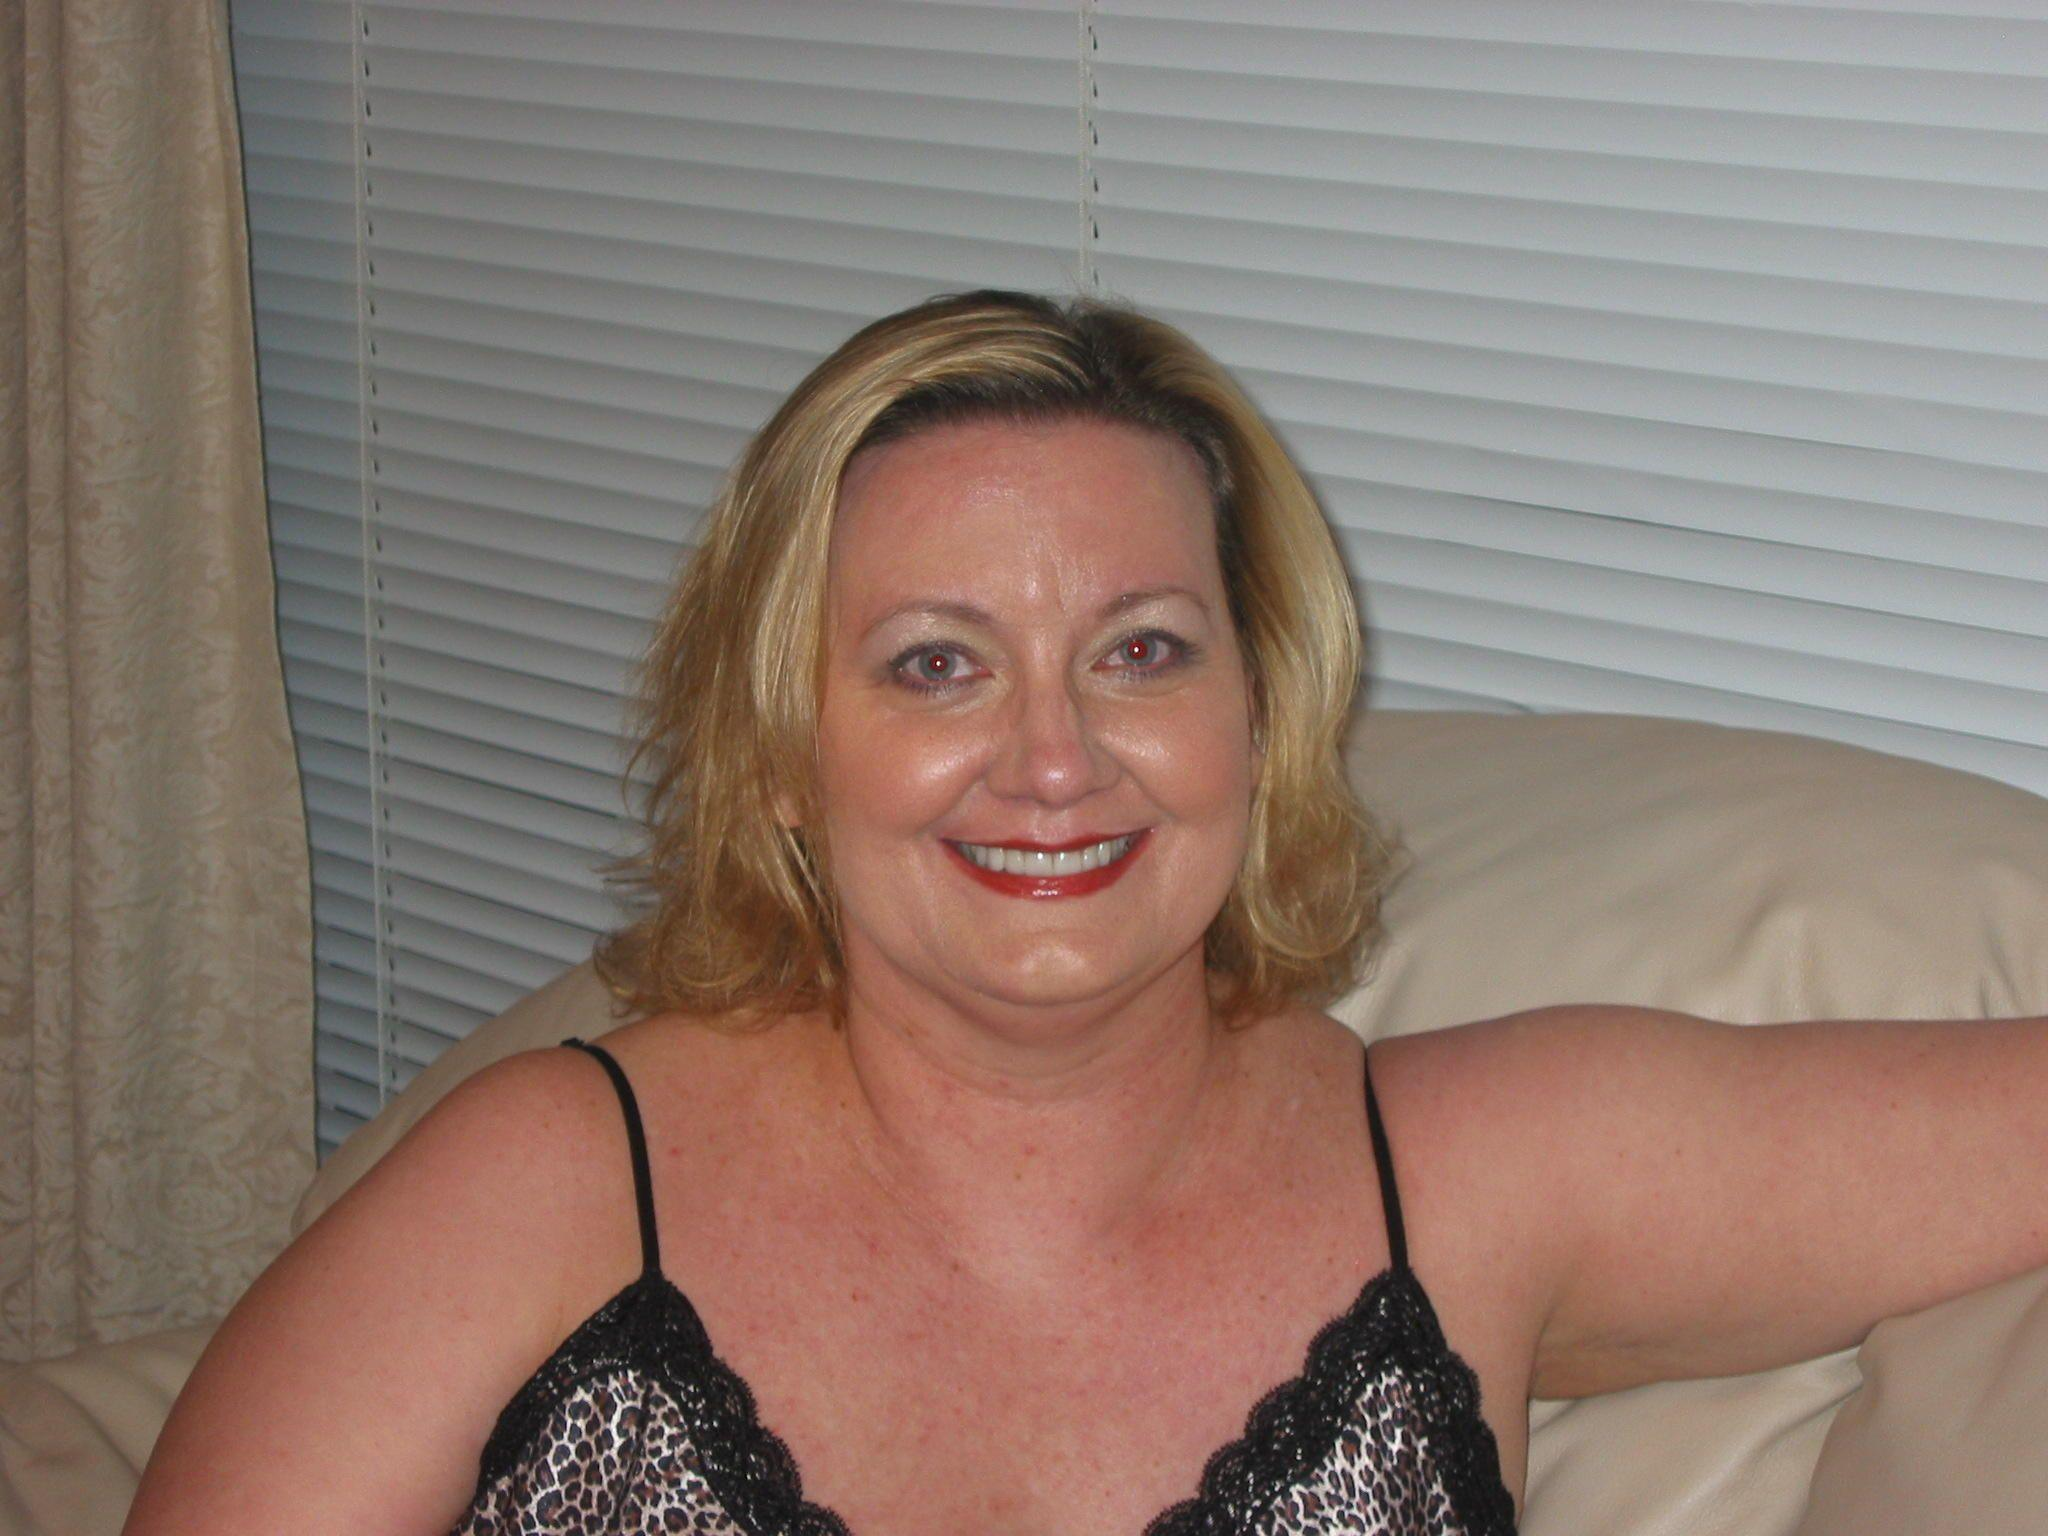 dunwoody online hookup & dating Dinner dates for singles in atlanta our unique dating services include weekly  dinner and lunch dates with 8 compatible singles.